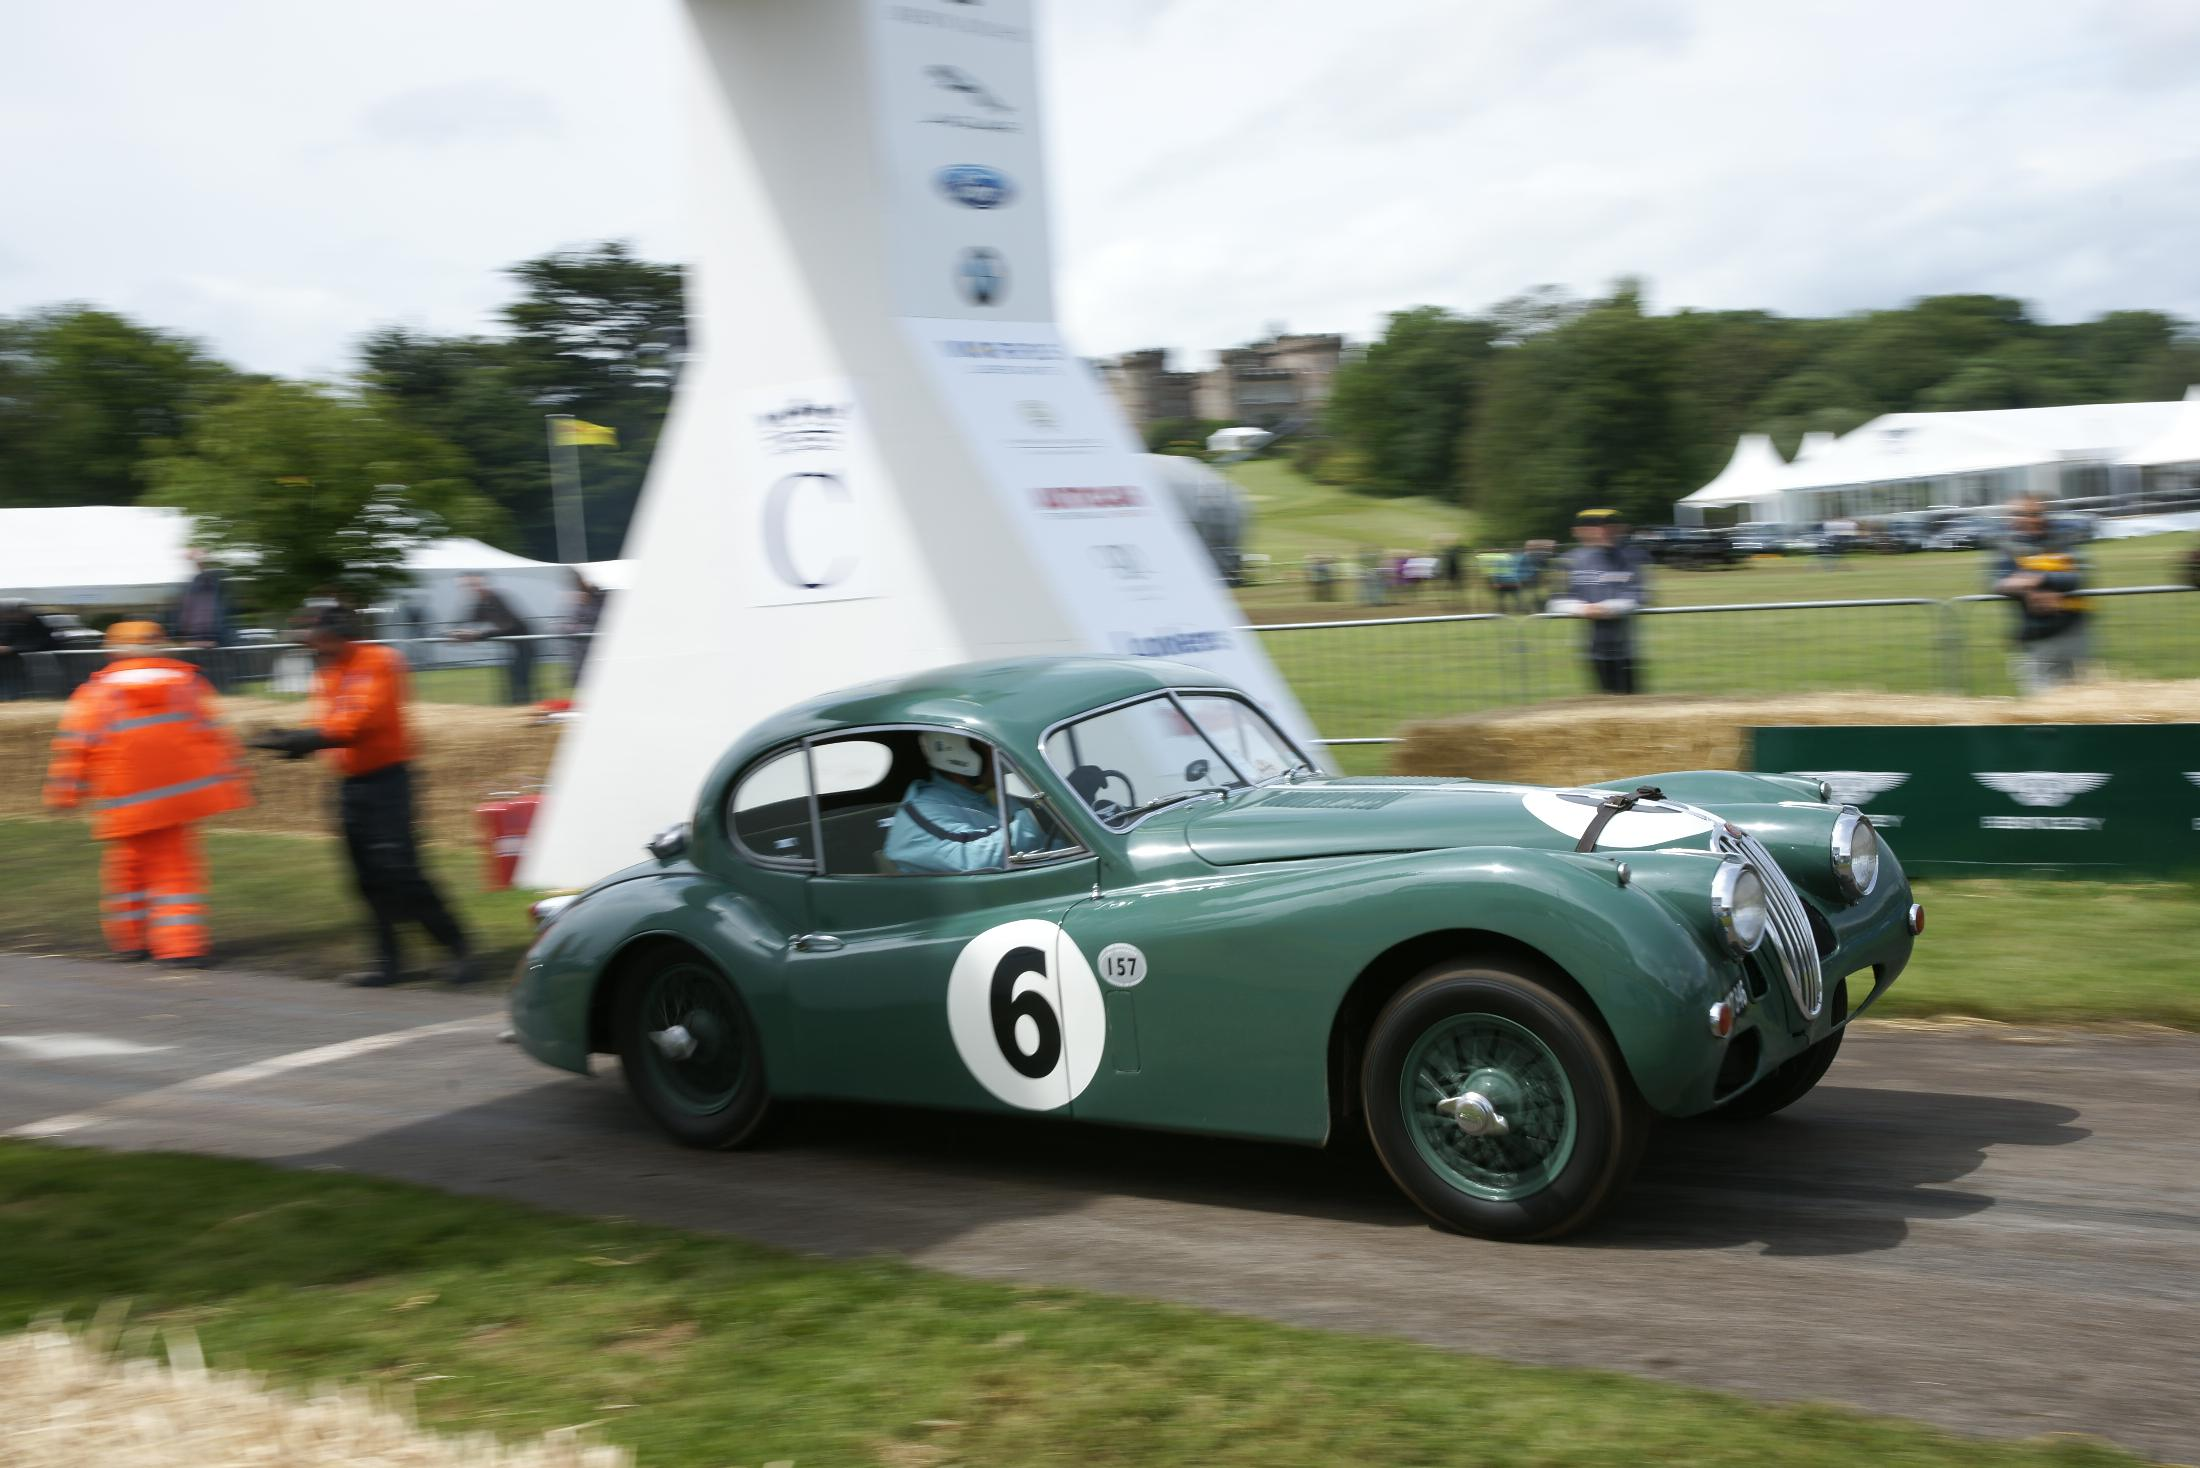 Jaguar XK 140 Cholmondeley 2012